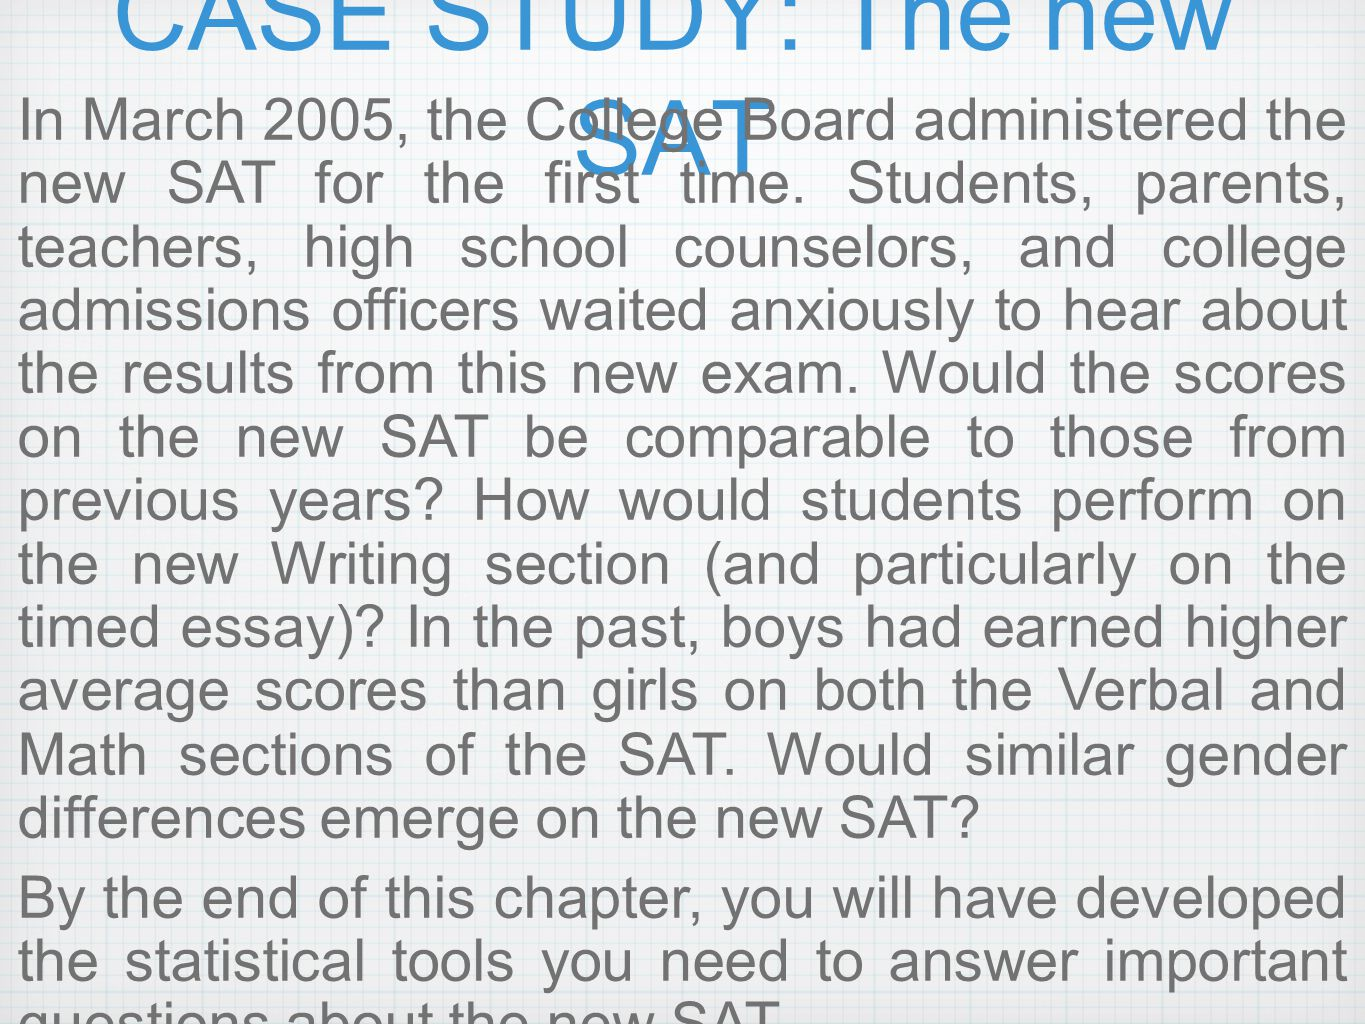 CASE STUDY: The new SAT